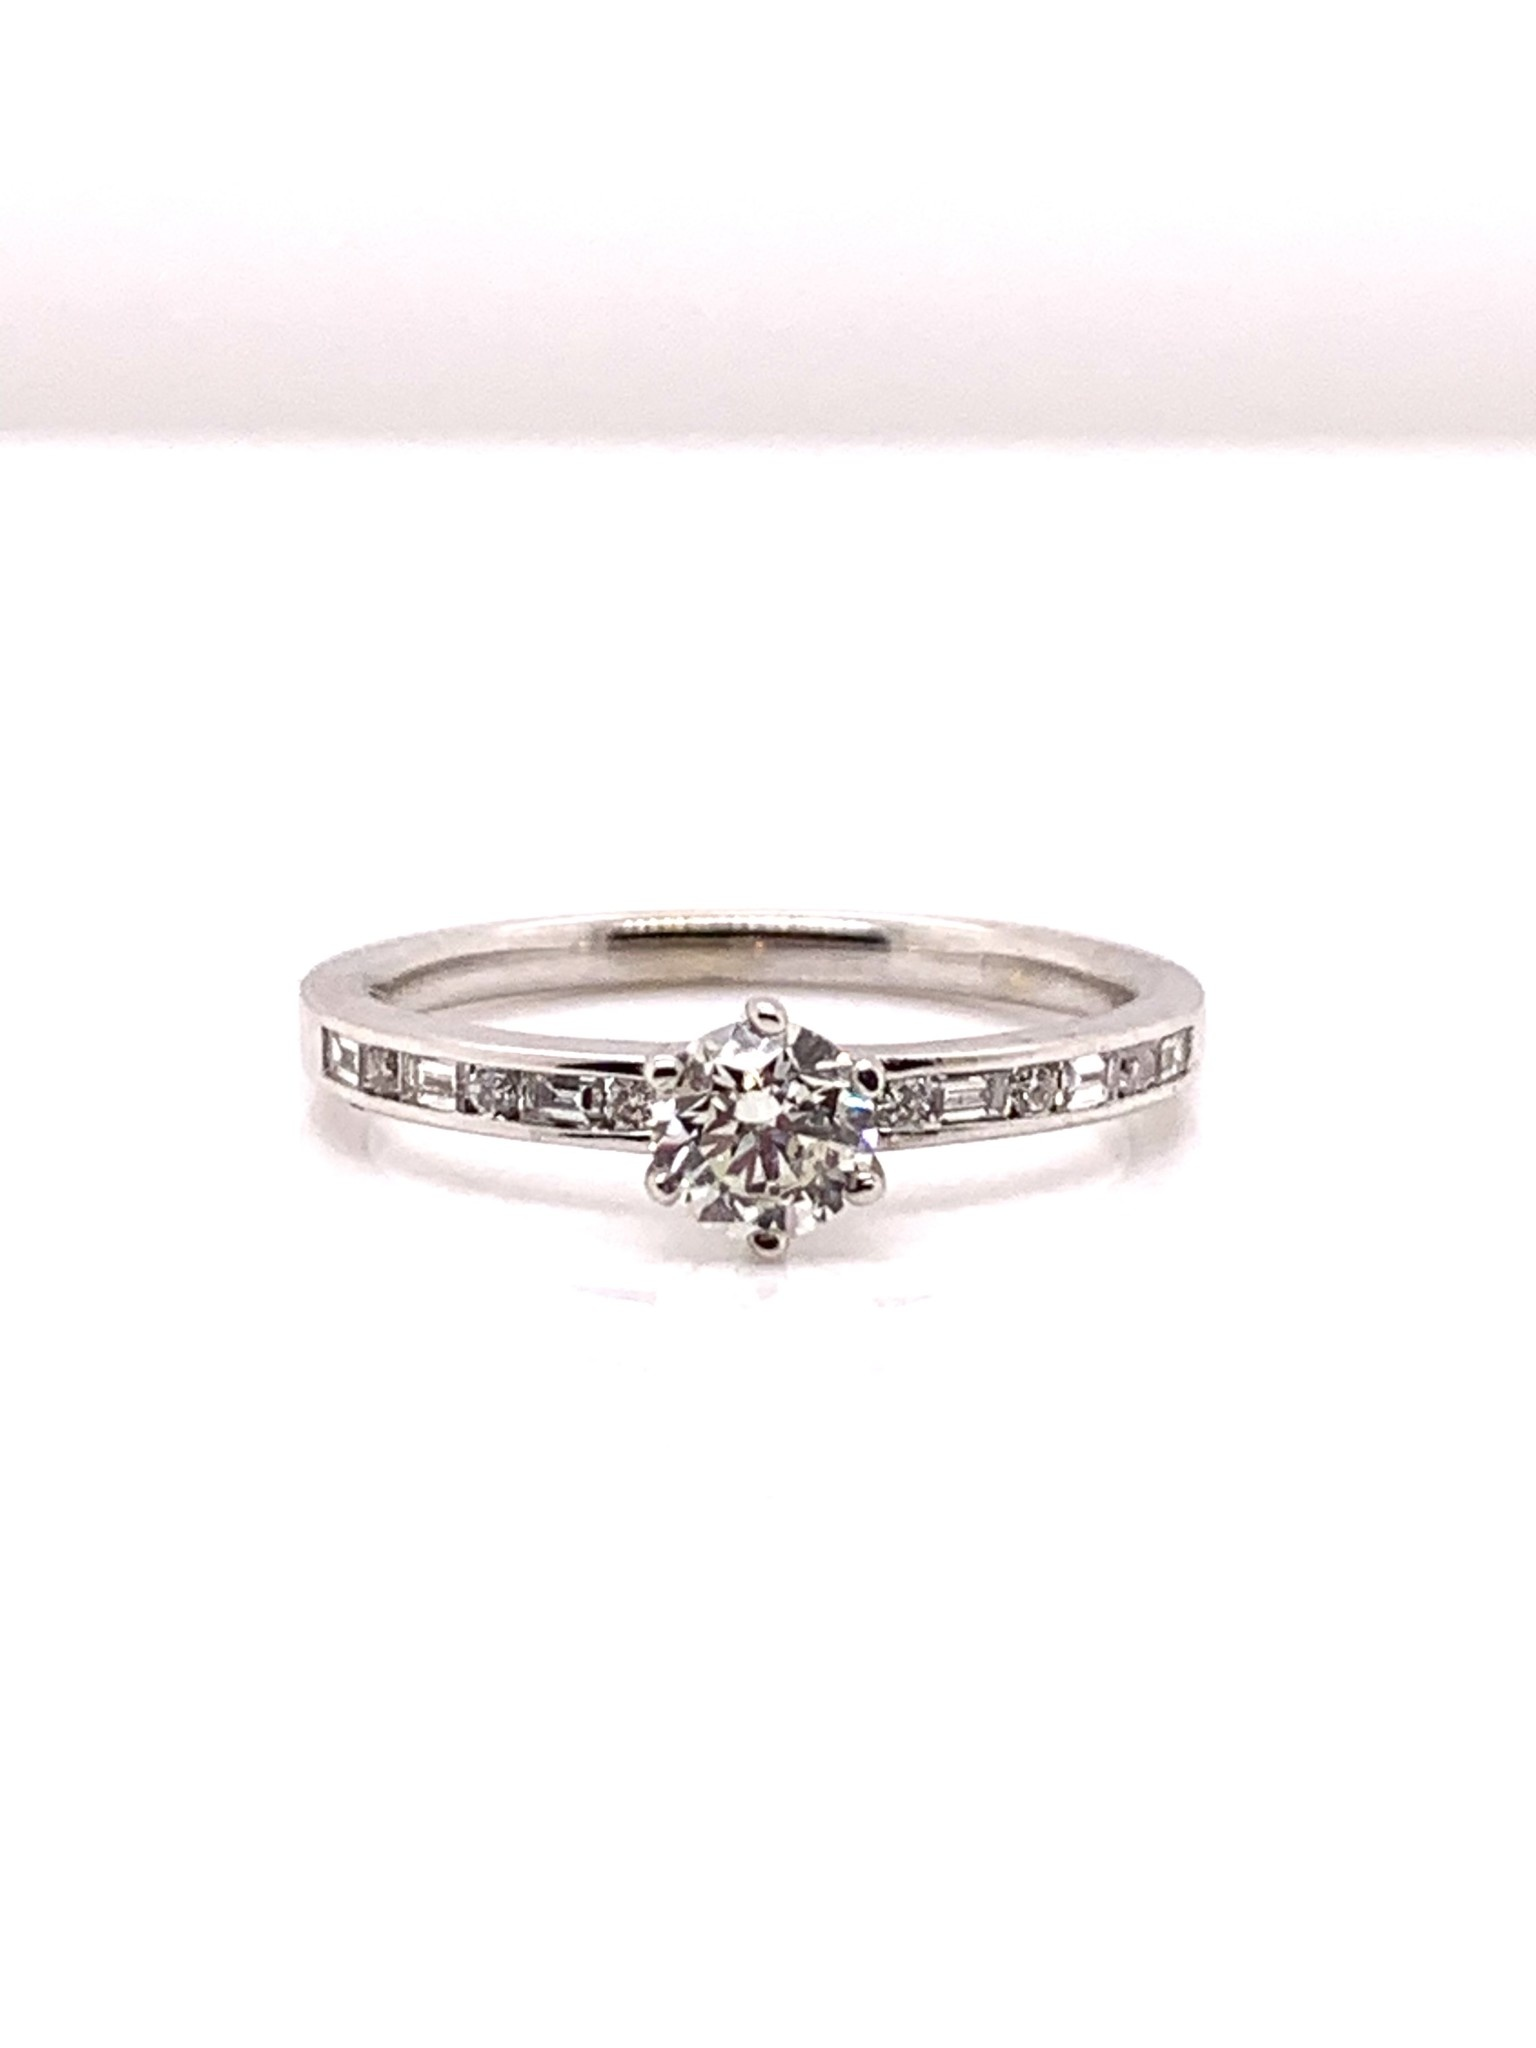 18k white gold 0.37 ct (center) diamond engagement ring size 6.5